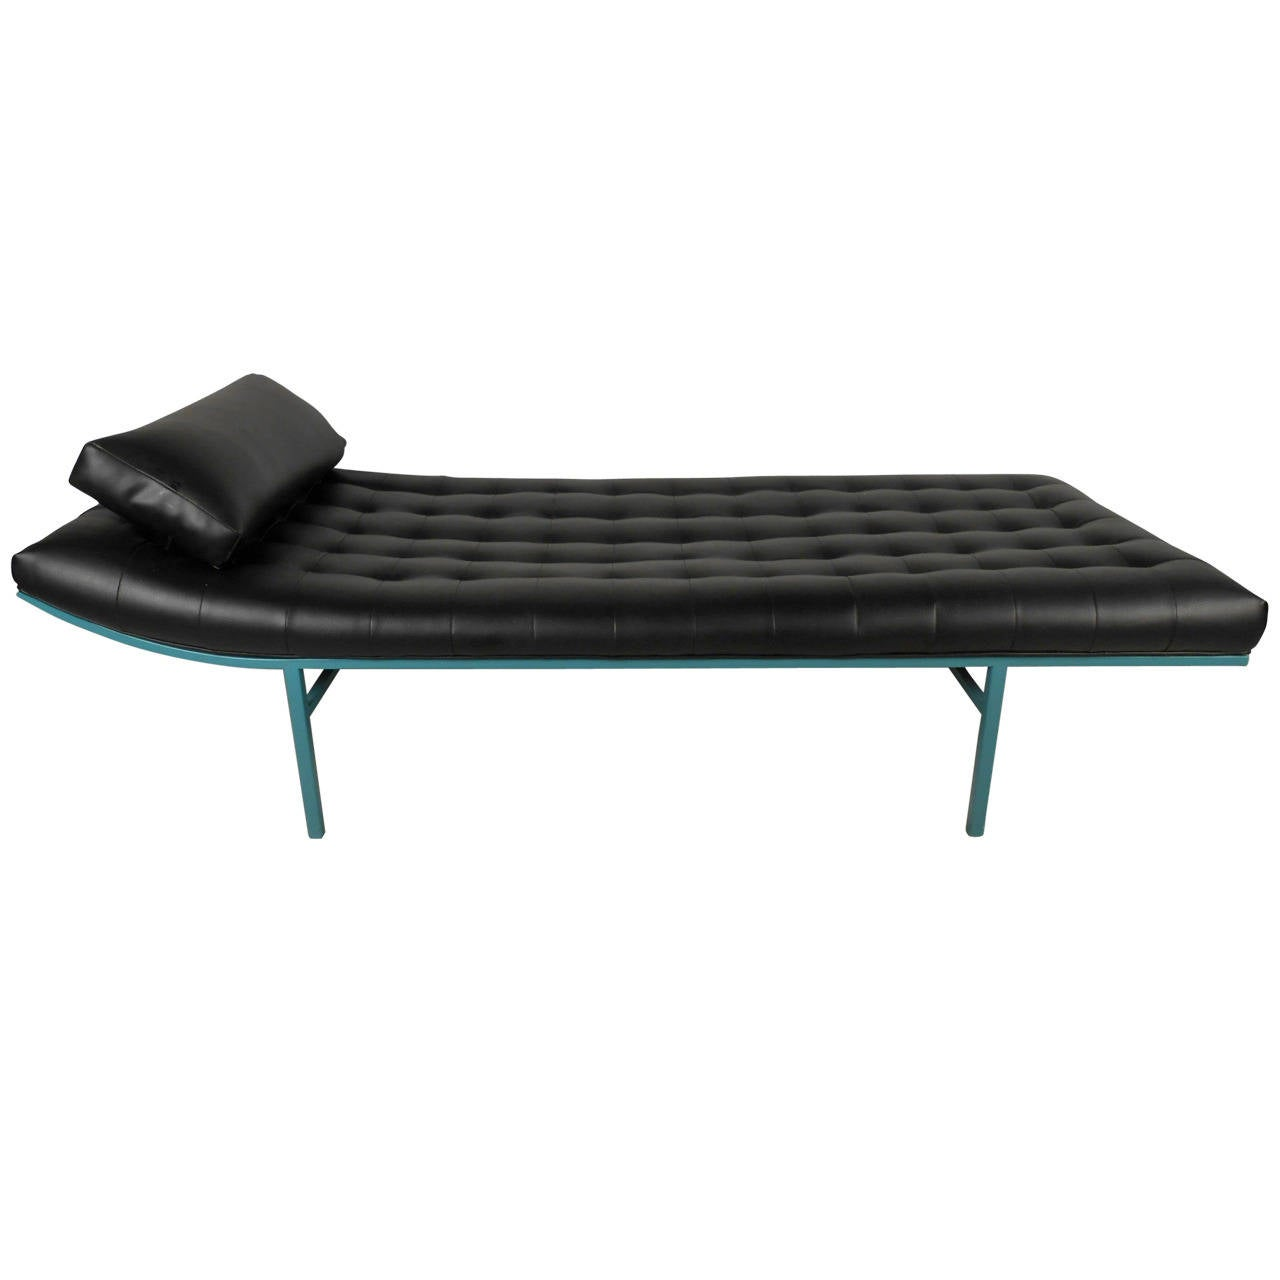 Modern chaise longue for sale at 1stdibs for Chaise longue moderne